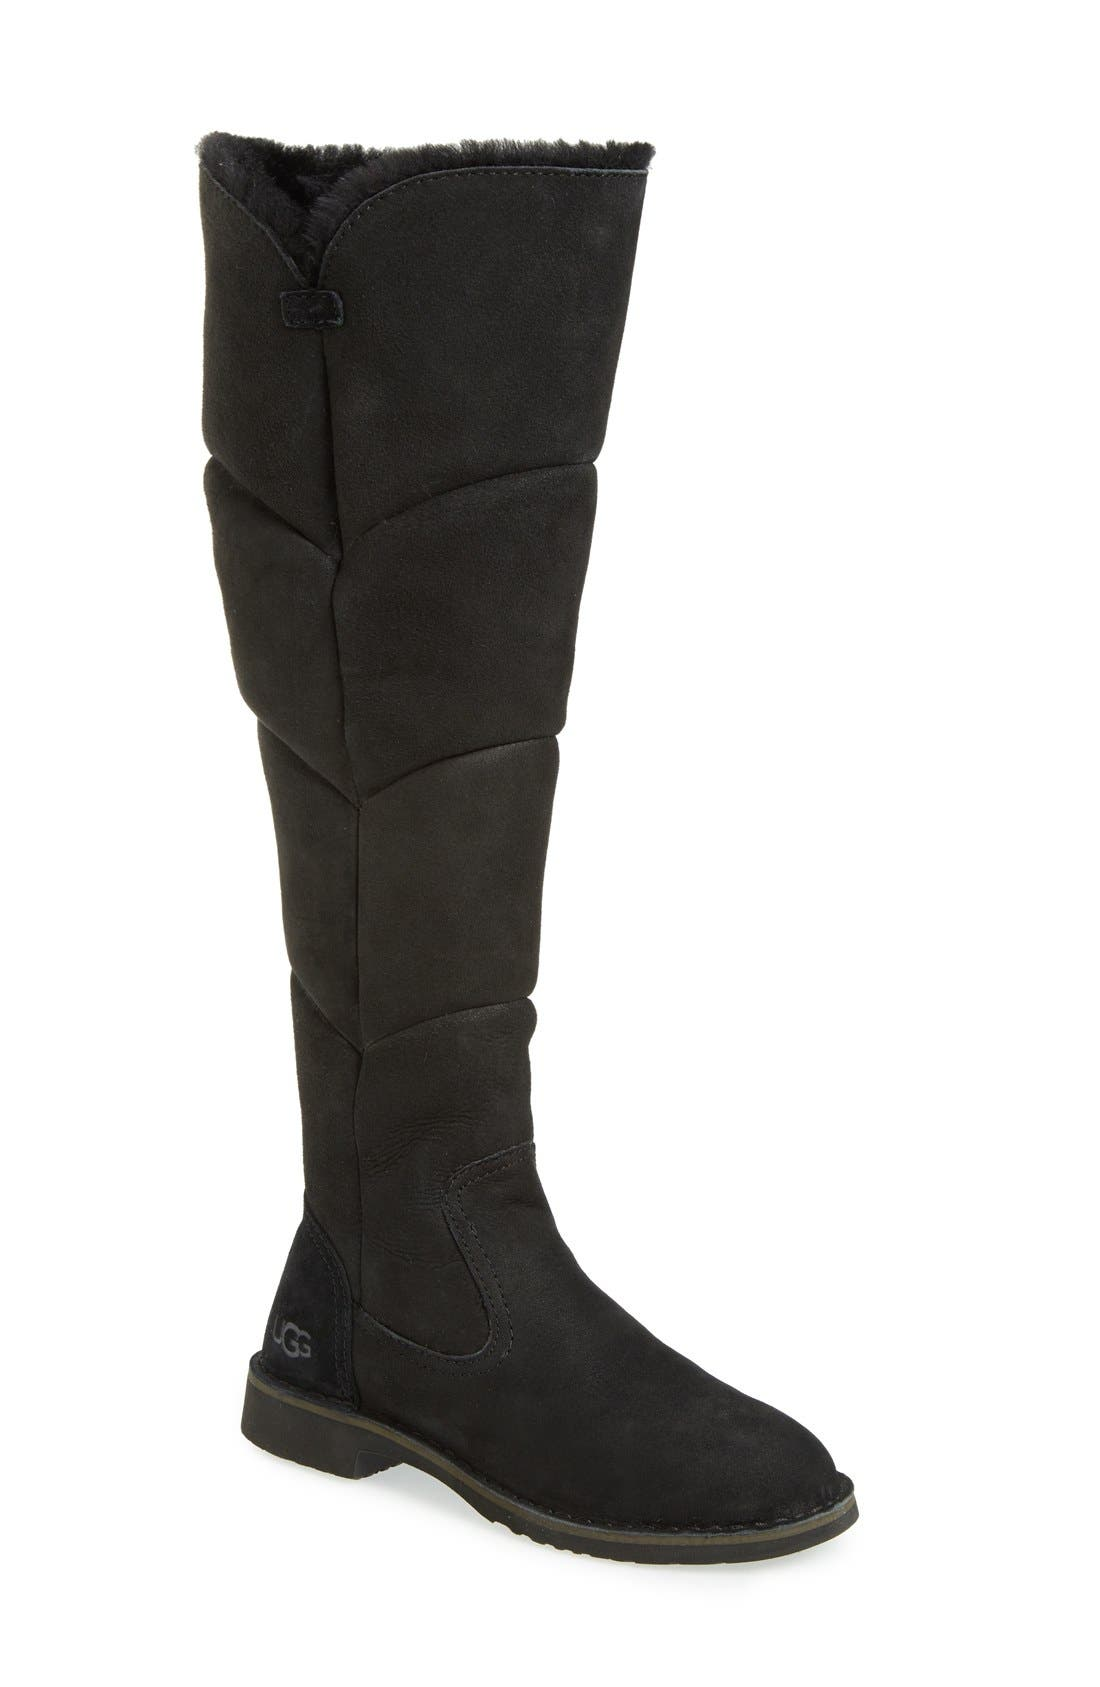 Alternate Image 1 Selected - UGG® Sibley Over the Knee Water Resistant Boot (Women)